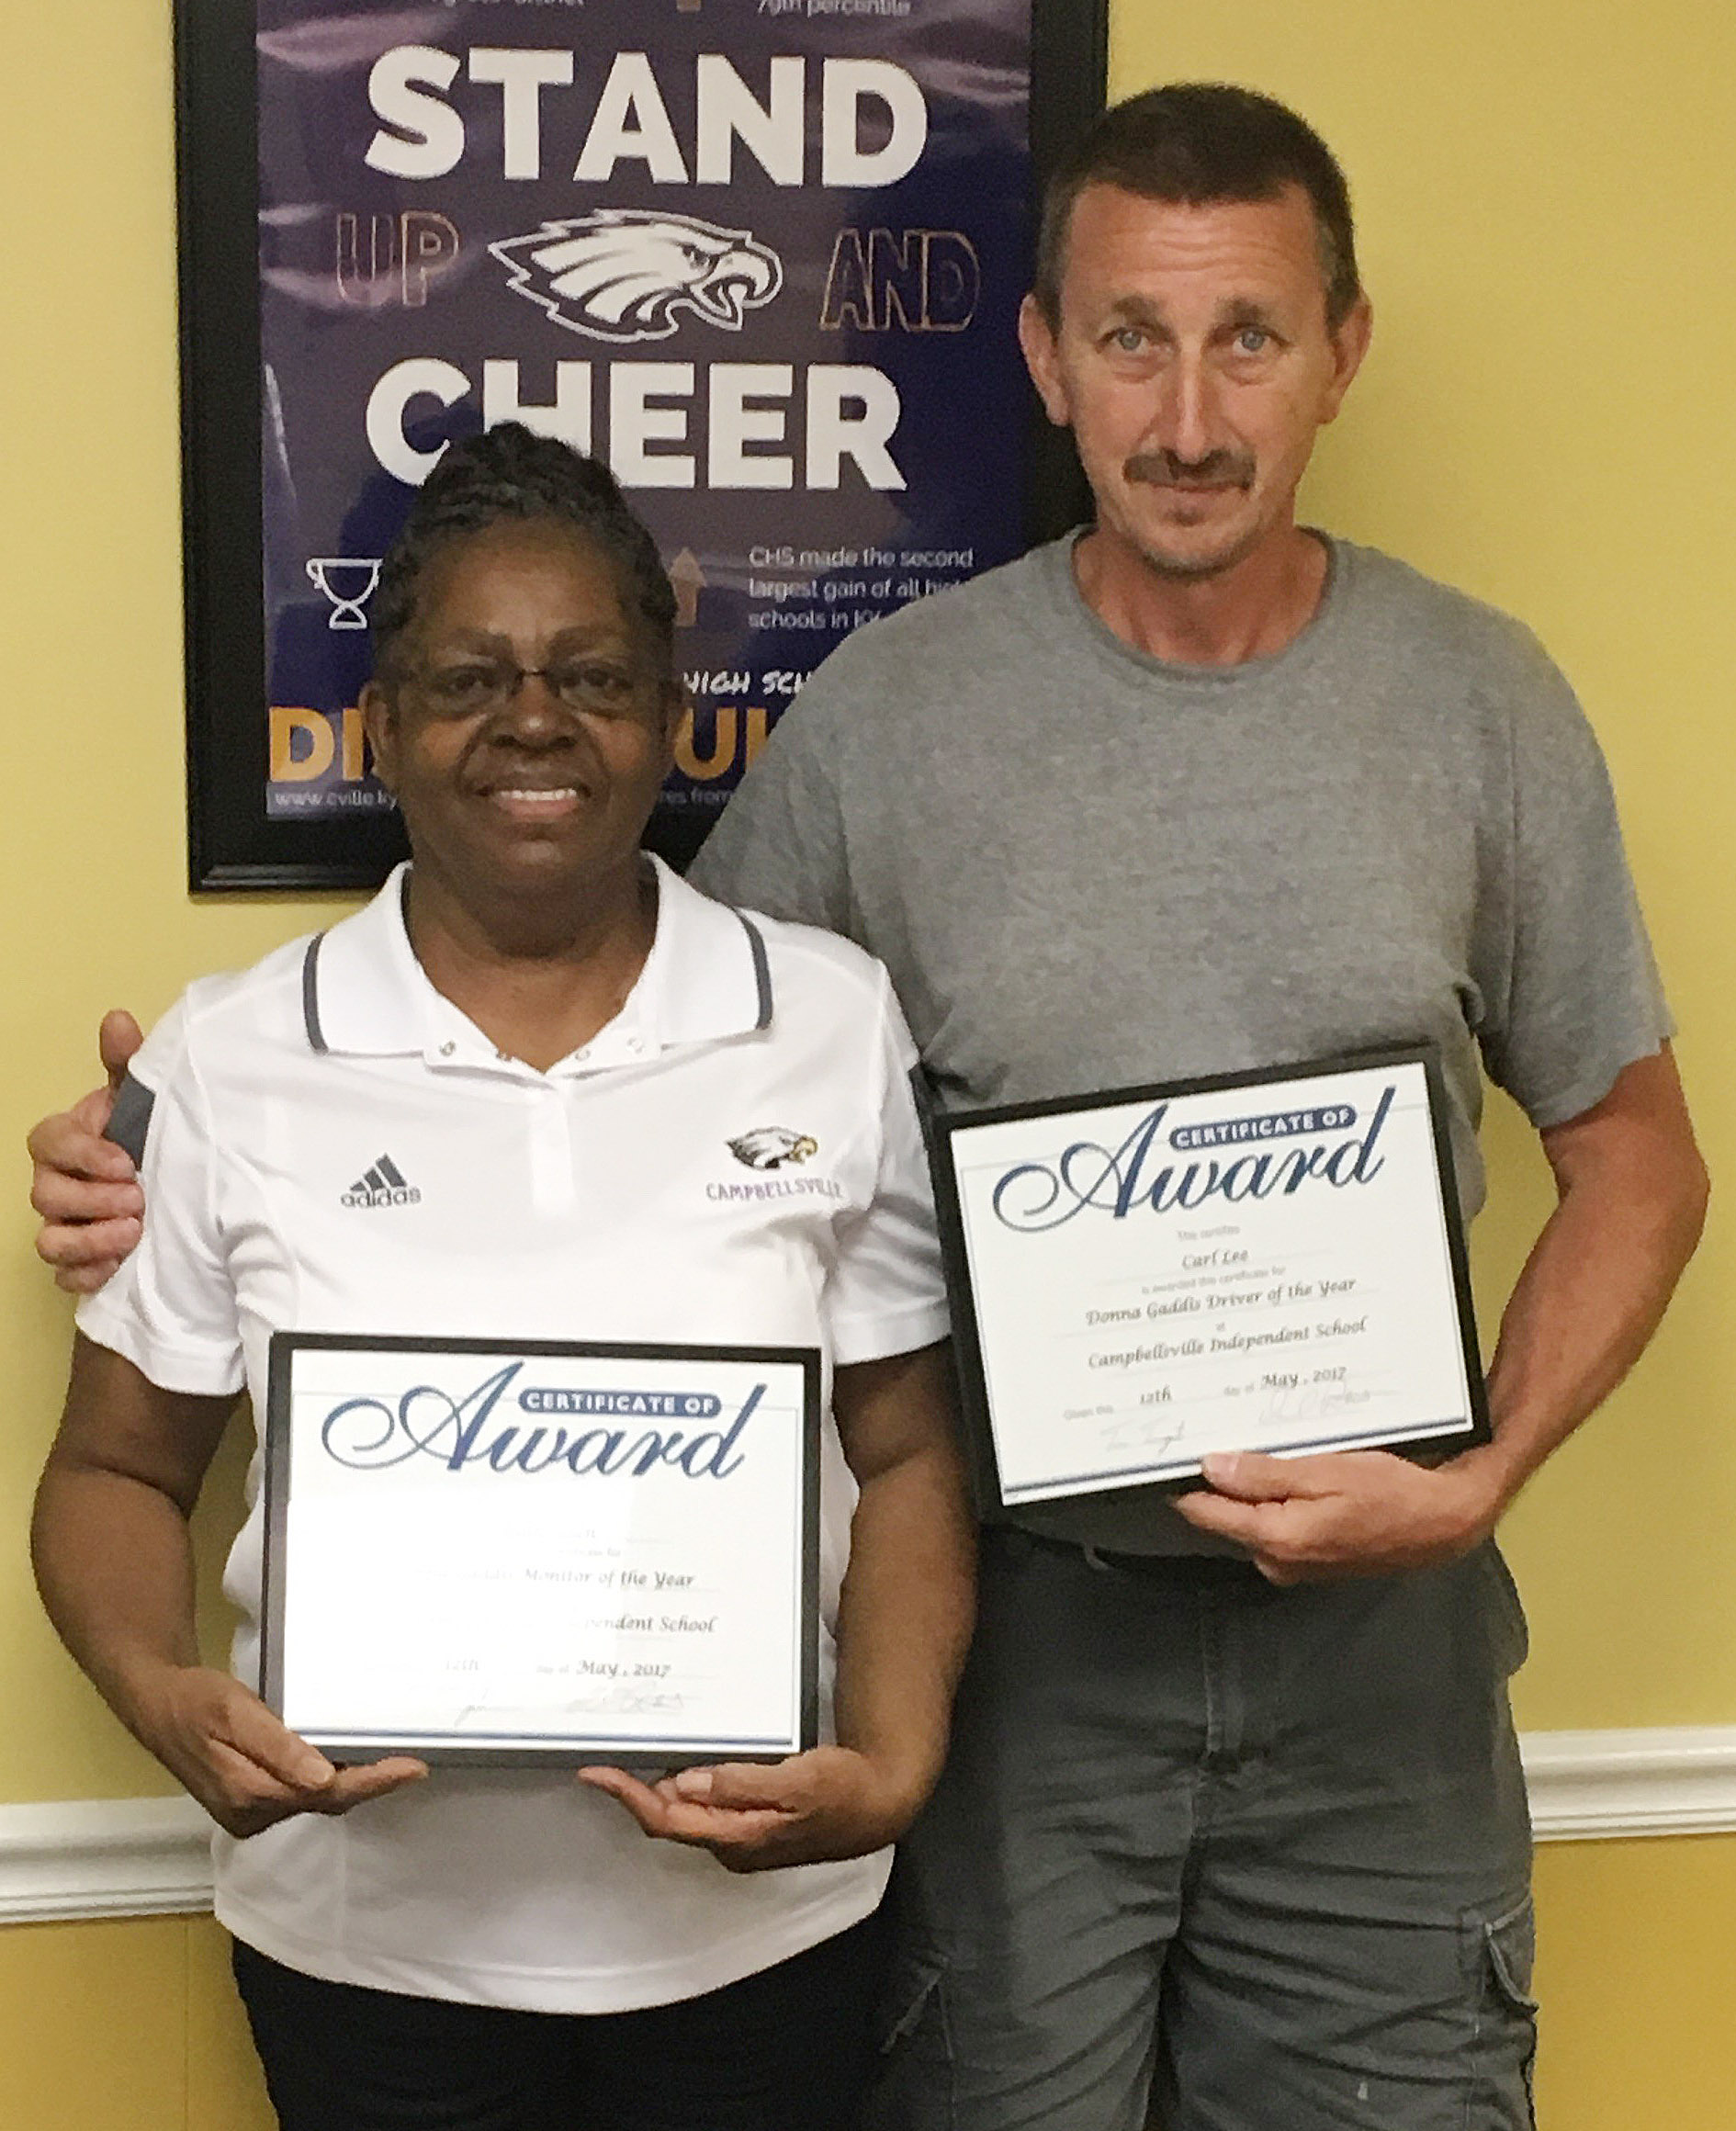 Ruth Allen received this year's Donna Gaddis Bus Monitor of the Year award. And Carl Lee received the Donna Gaddis Driver of the Year award.